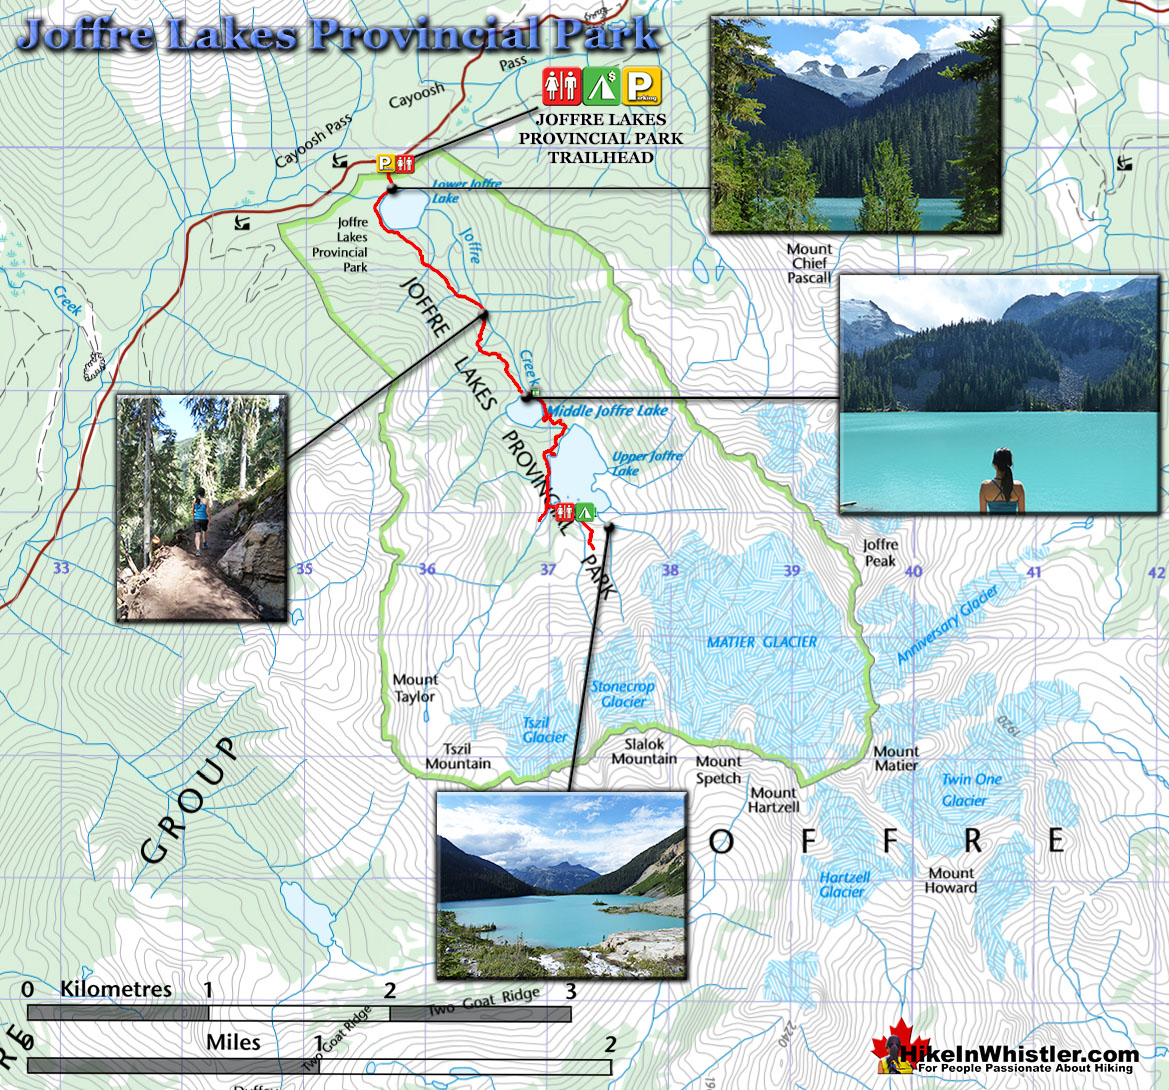 Joffre Lakes Provincial Park Hiking Trail Map